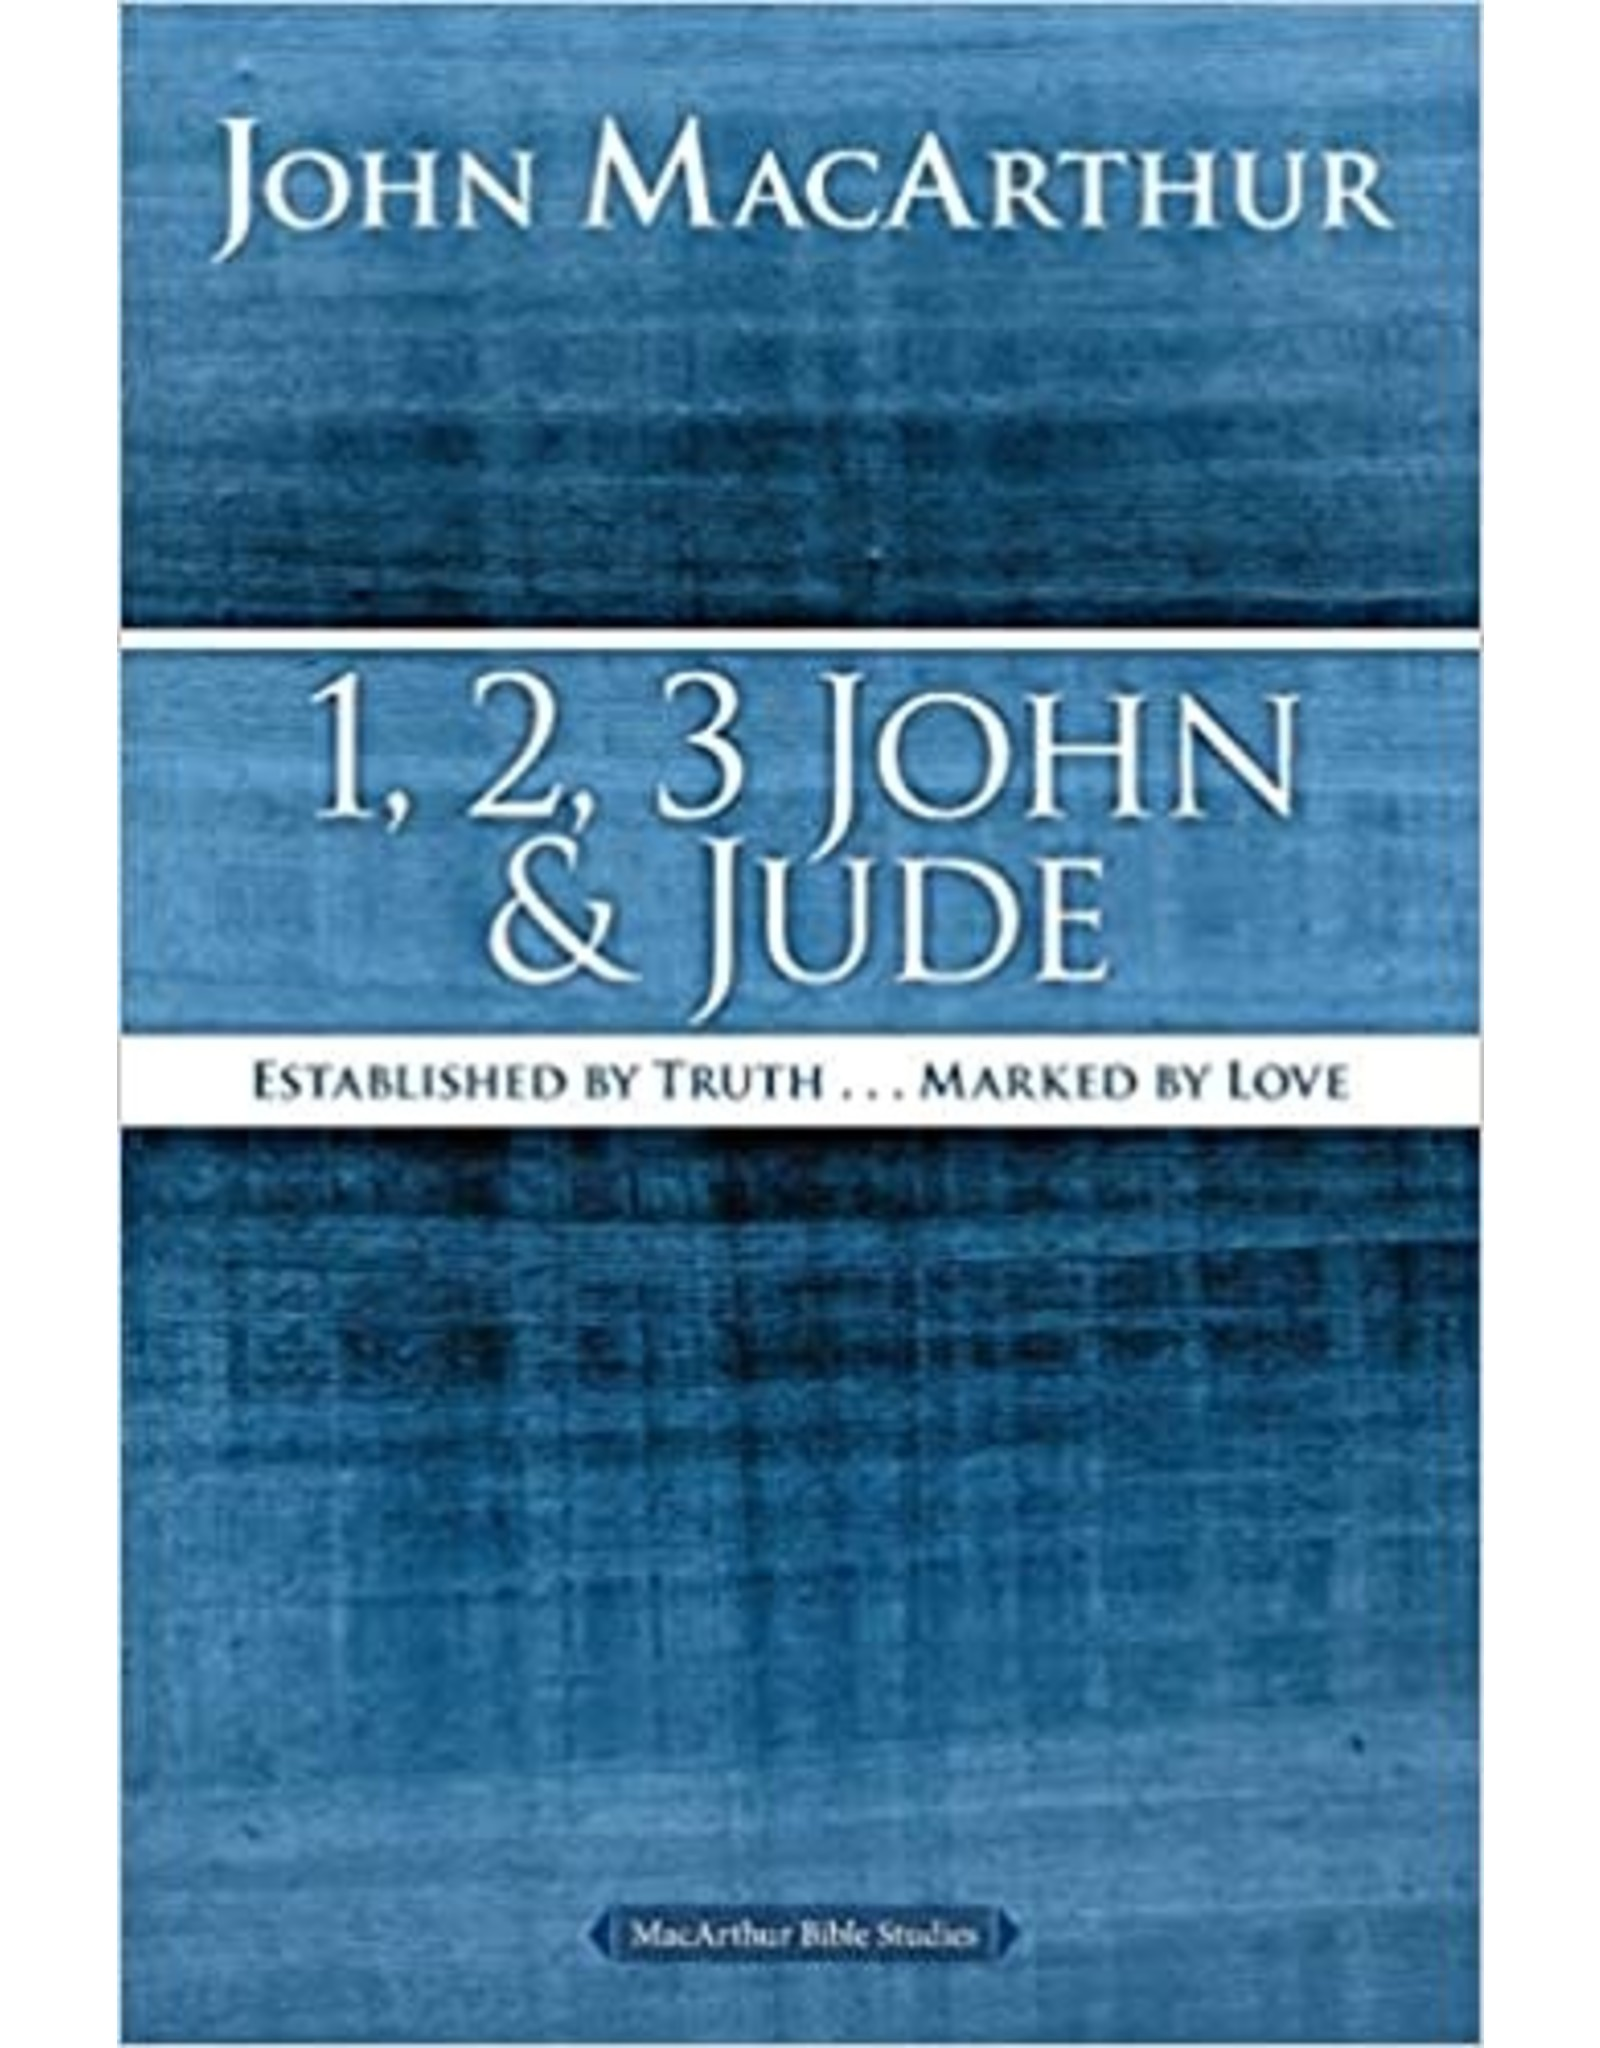 MacArthur 1, 2, 3 John and Jude: Established in Truth ... Marked by Love